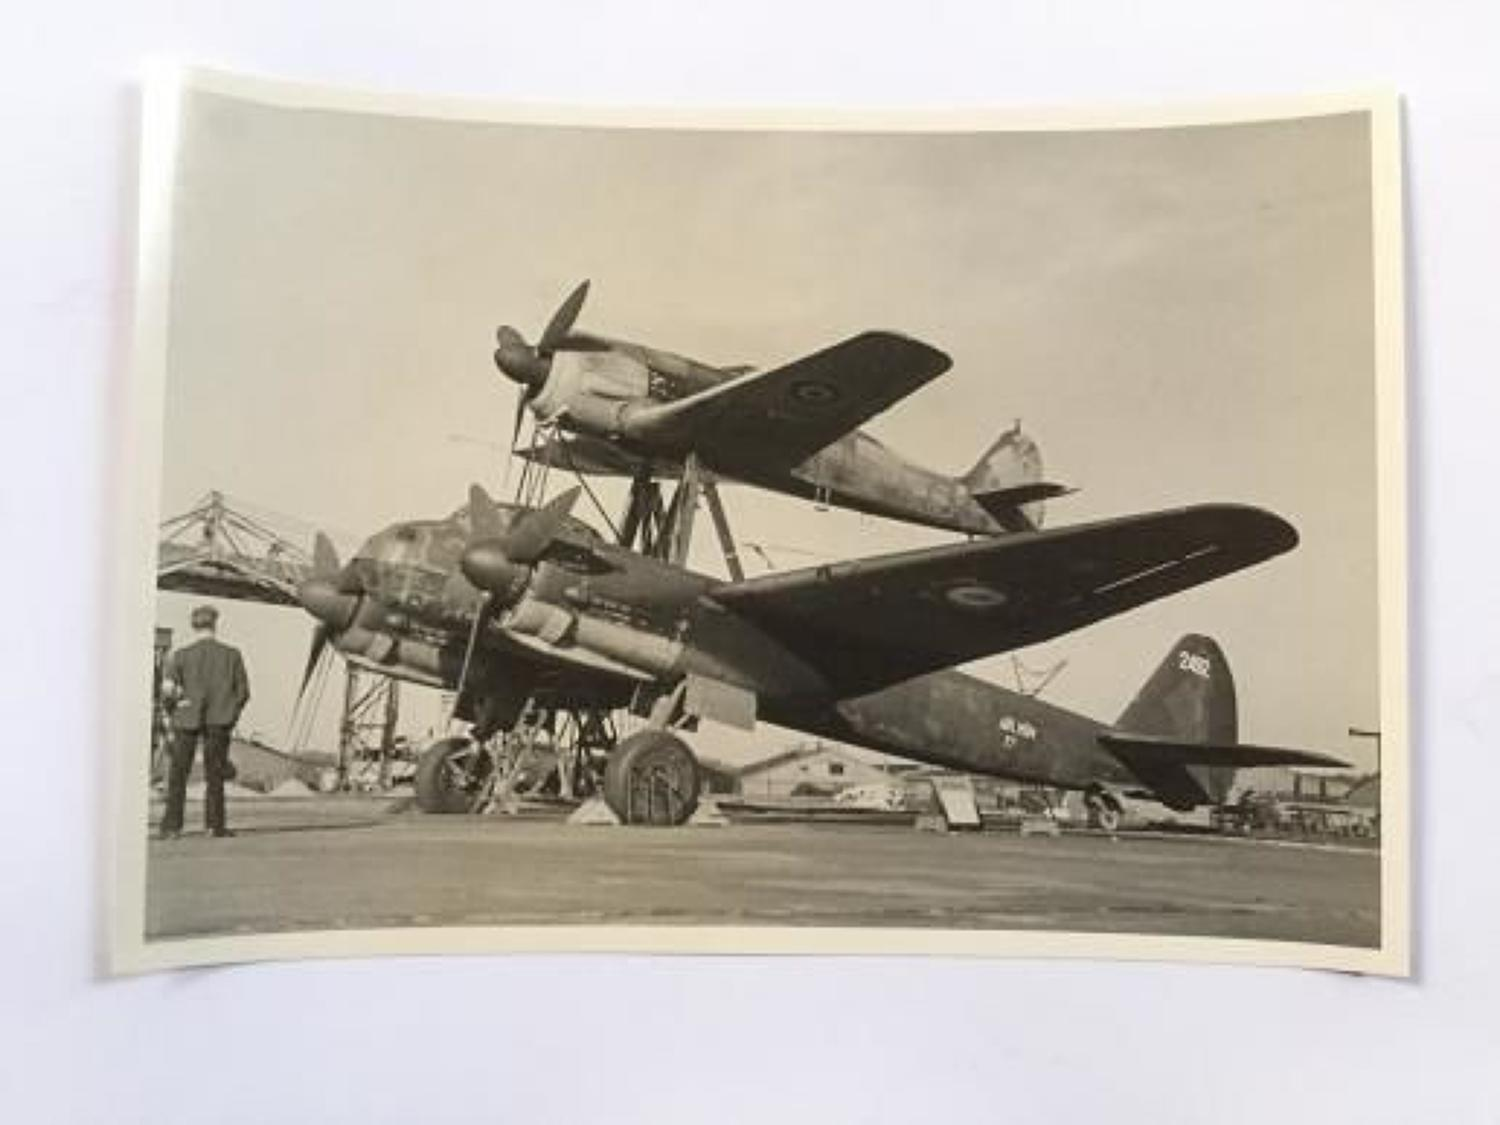 RAF Official Photograph of Experimental German Aircraft.